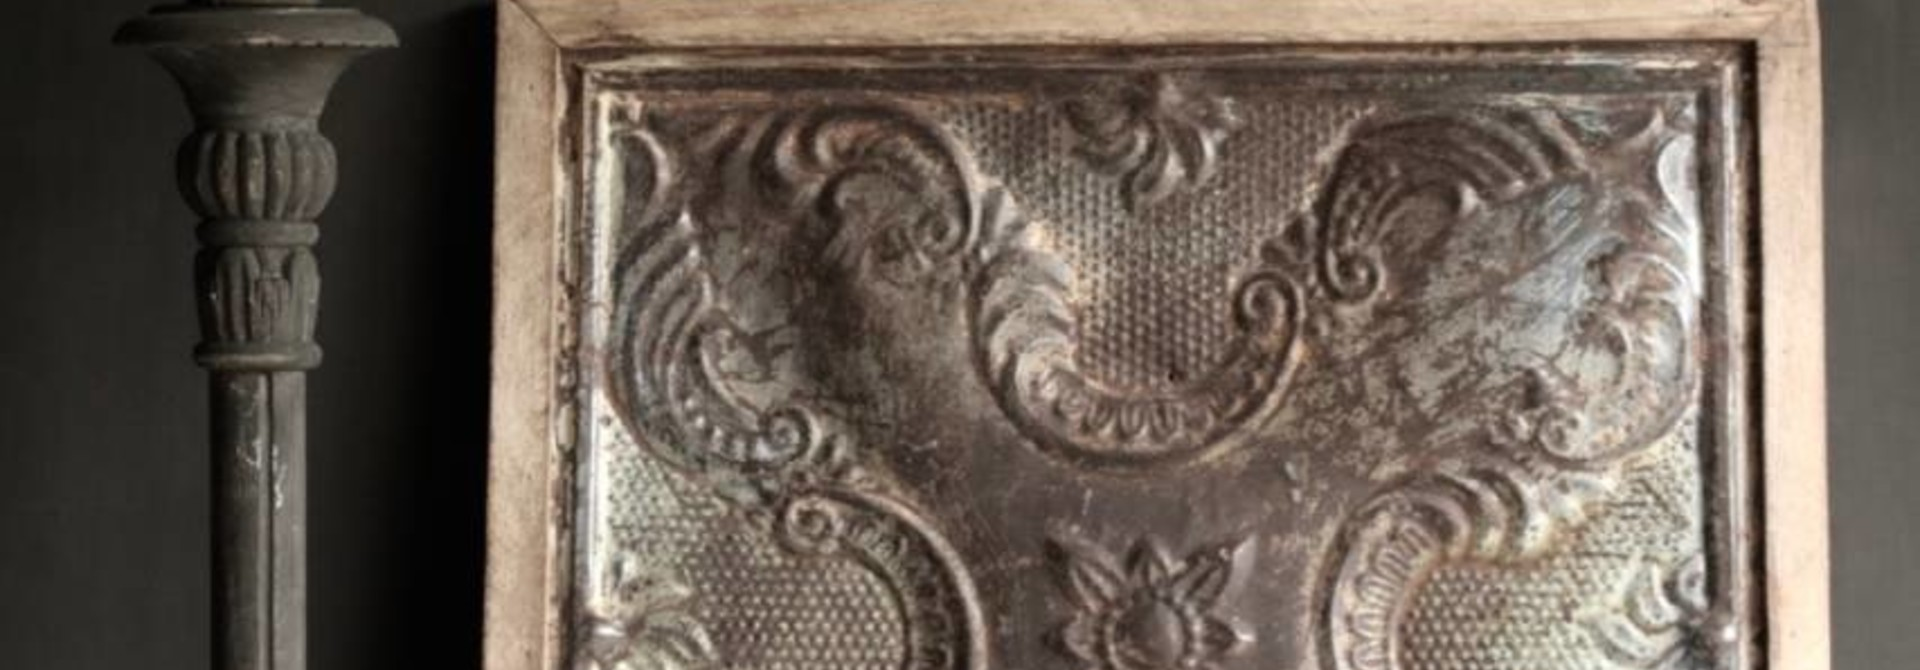 Beautiful old ceiling panel framed in wooden frame